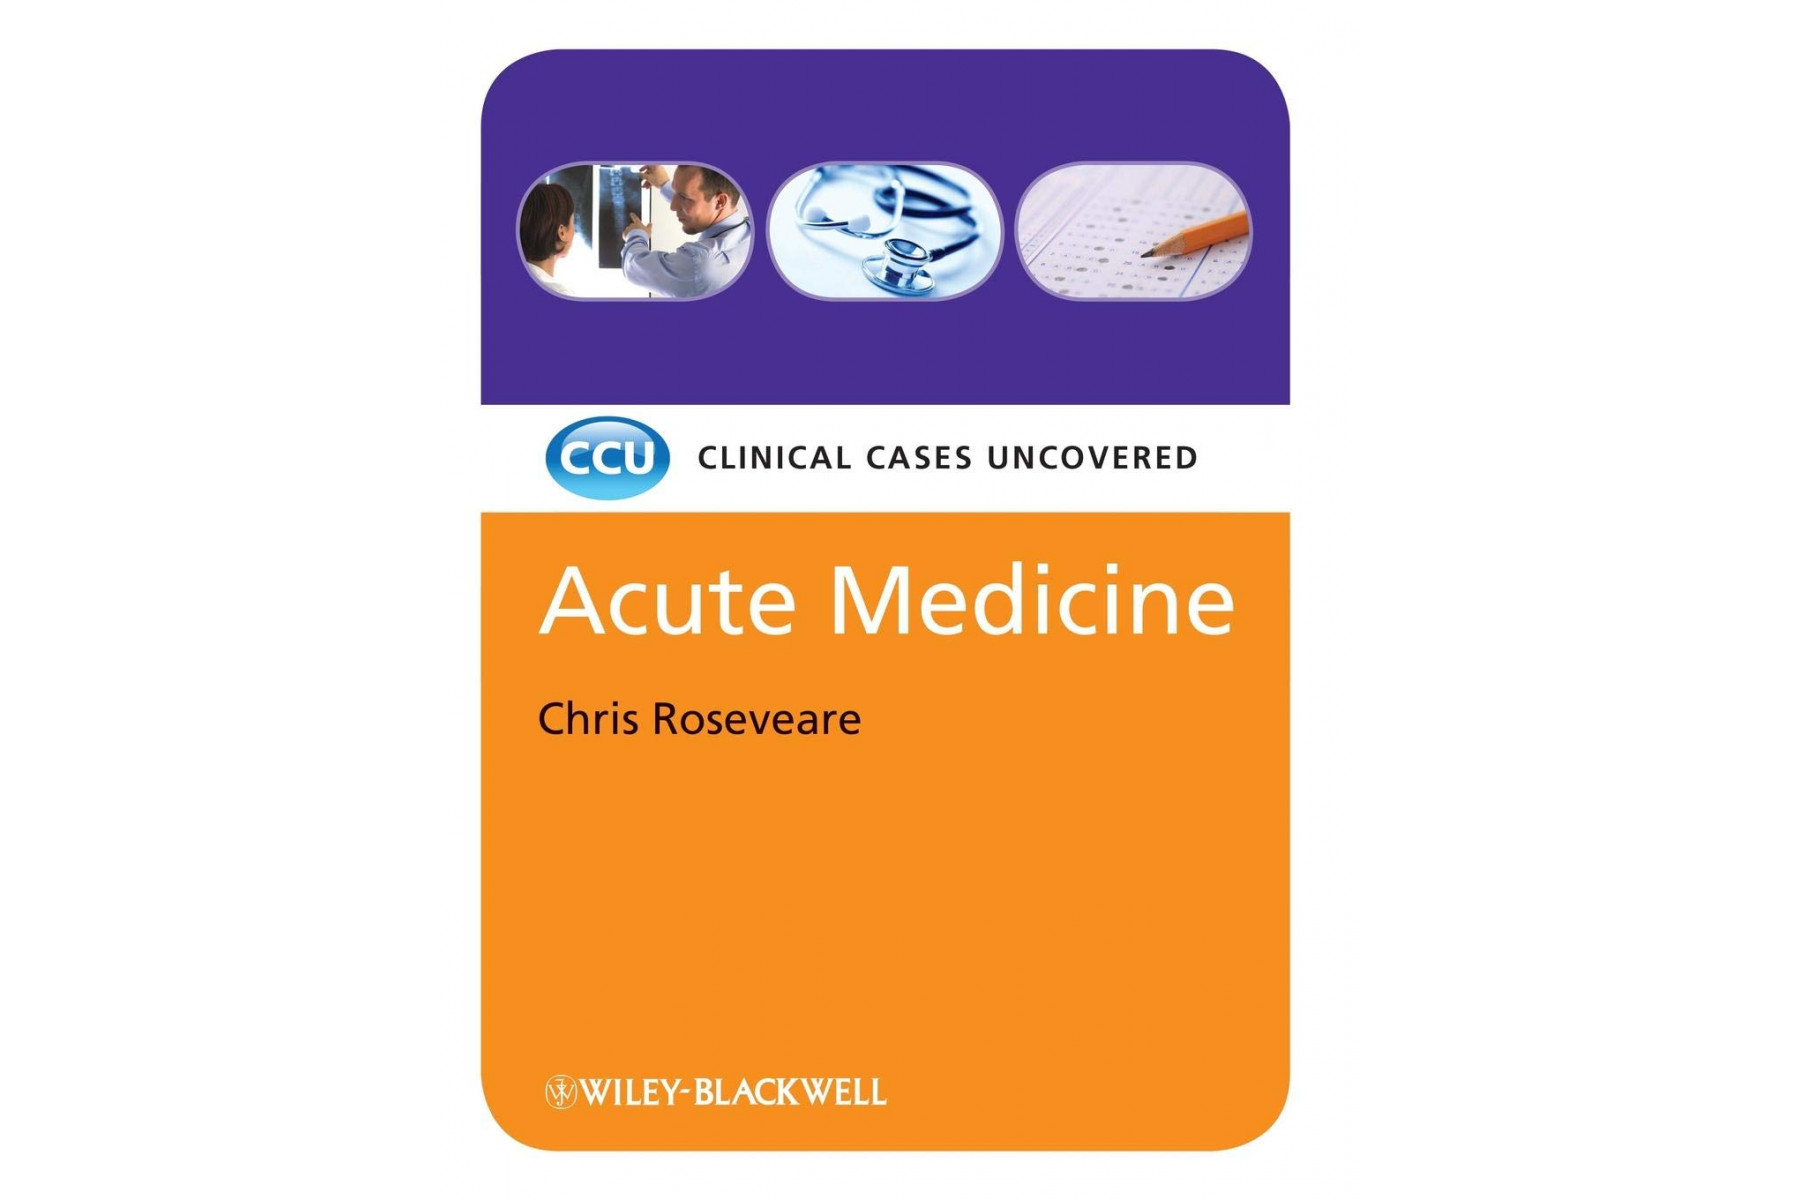 Acute Medicine - Clinical Cases Uncovered